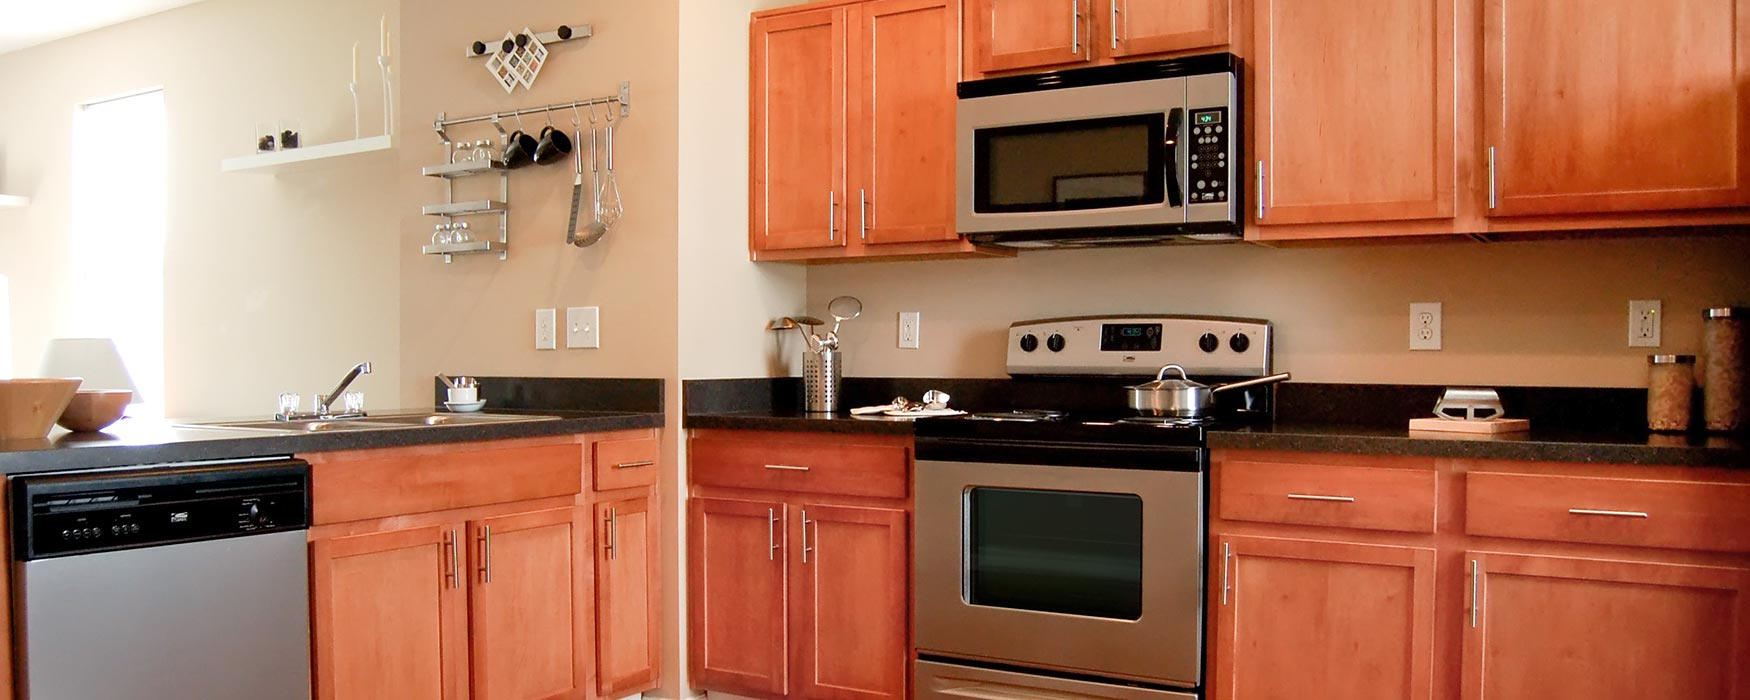 LC New Albany Park | New Albany Apartments | Stansbury Town Kitchen